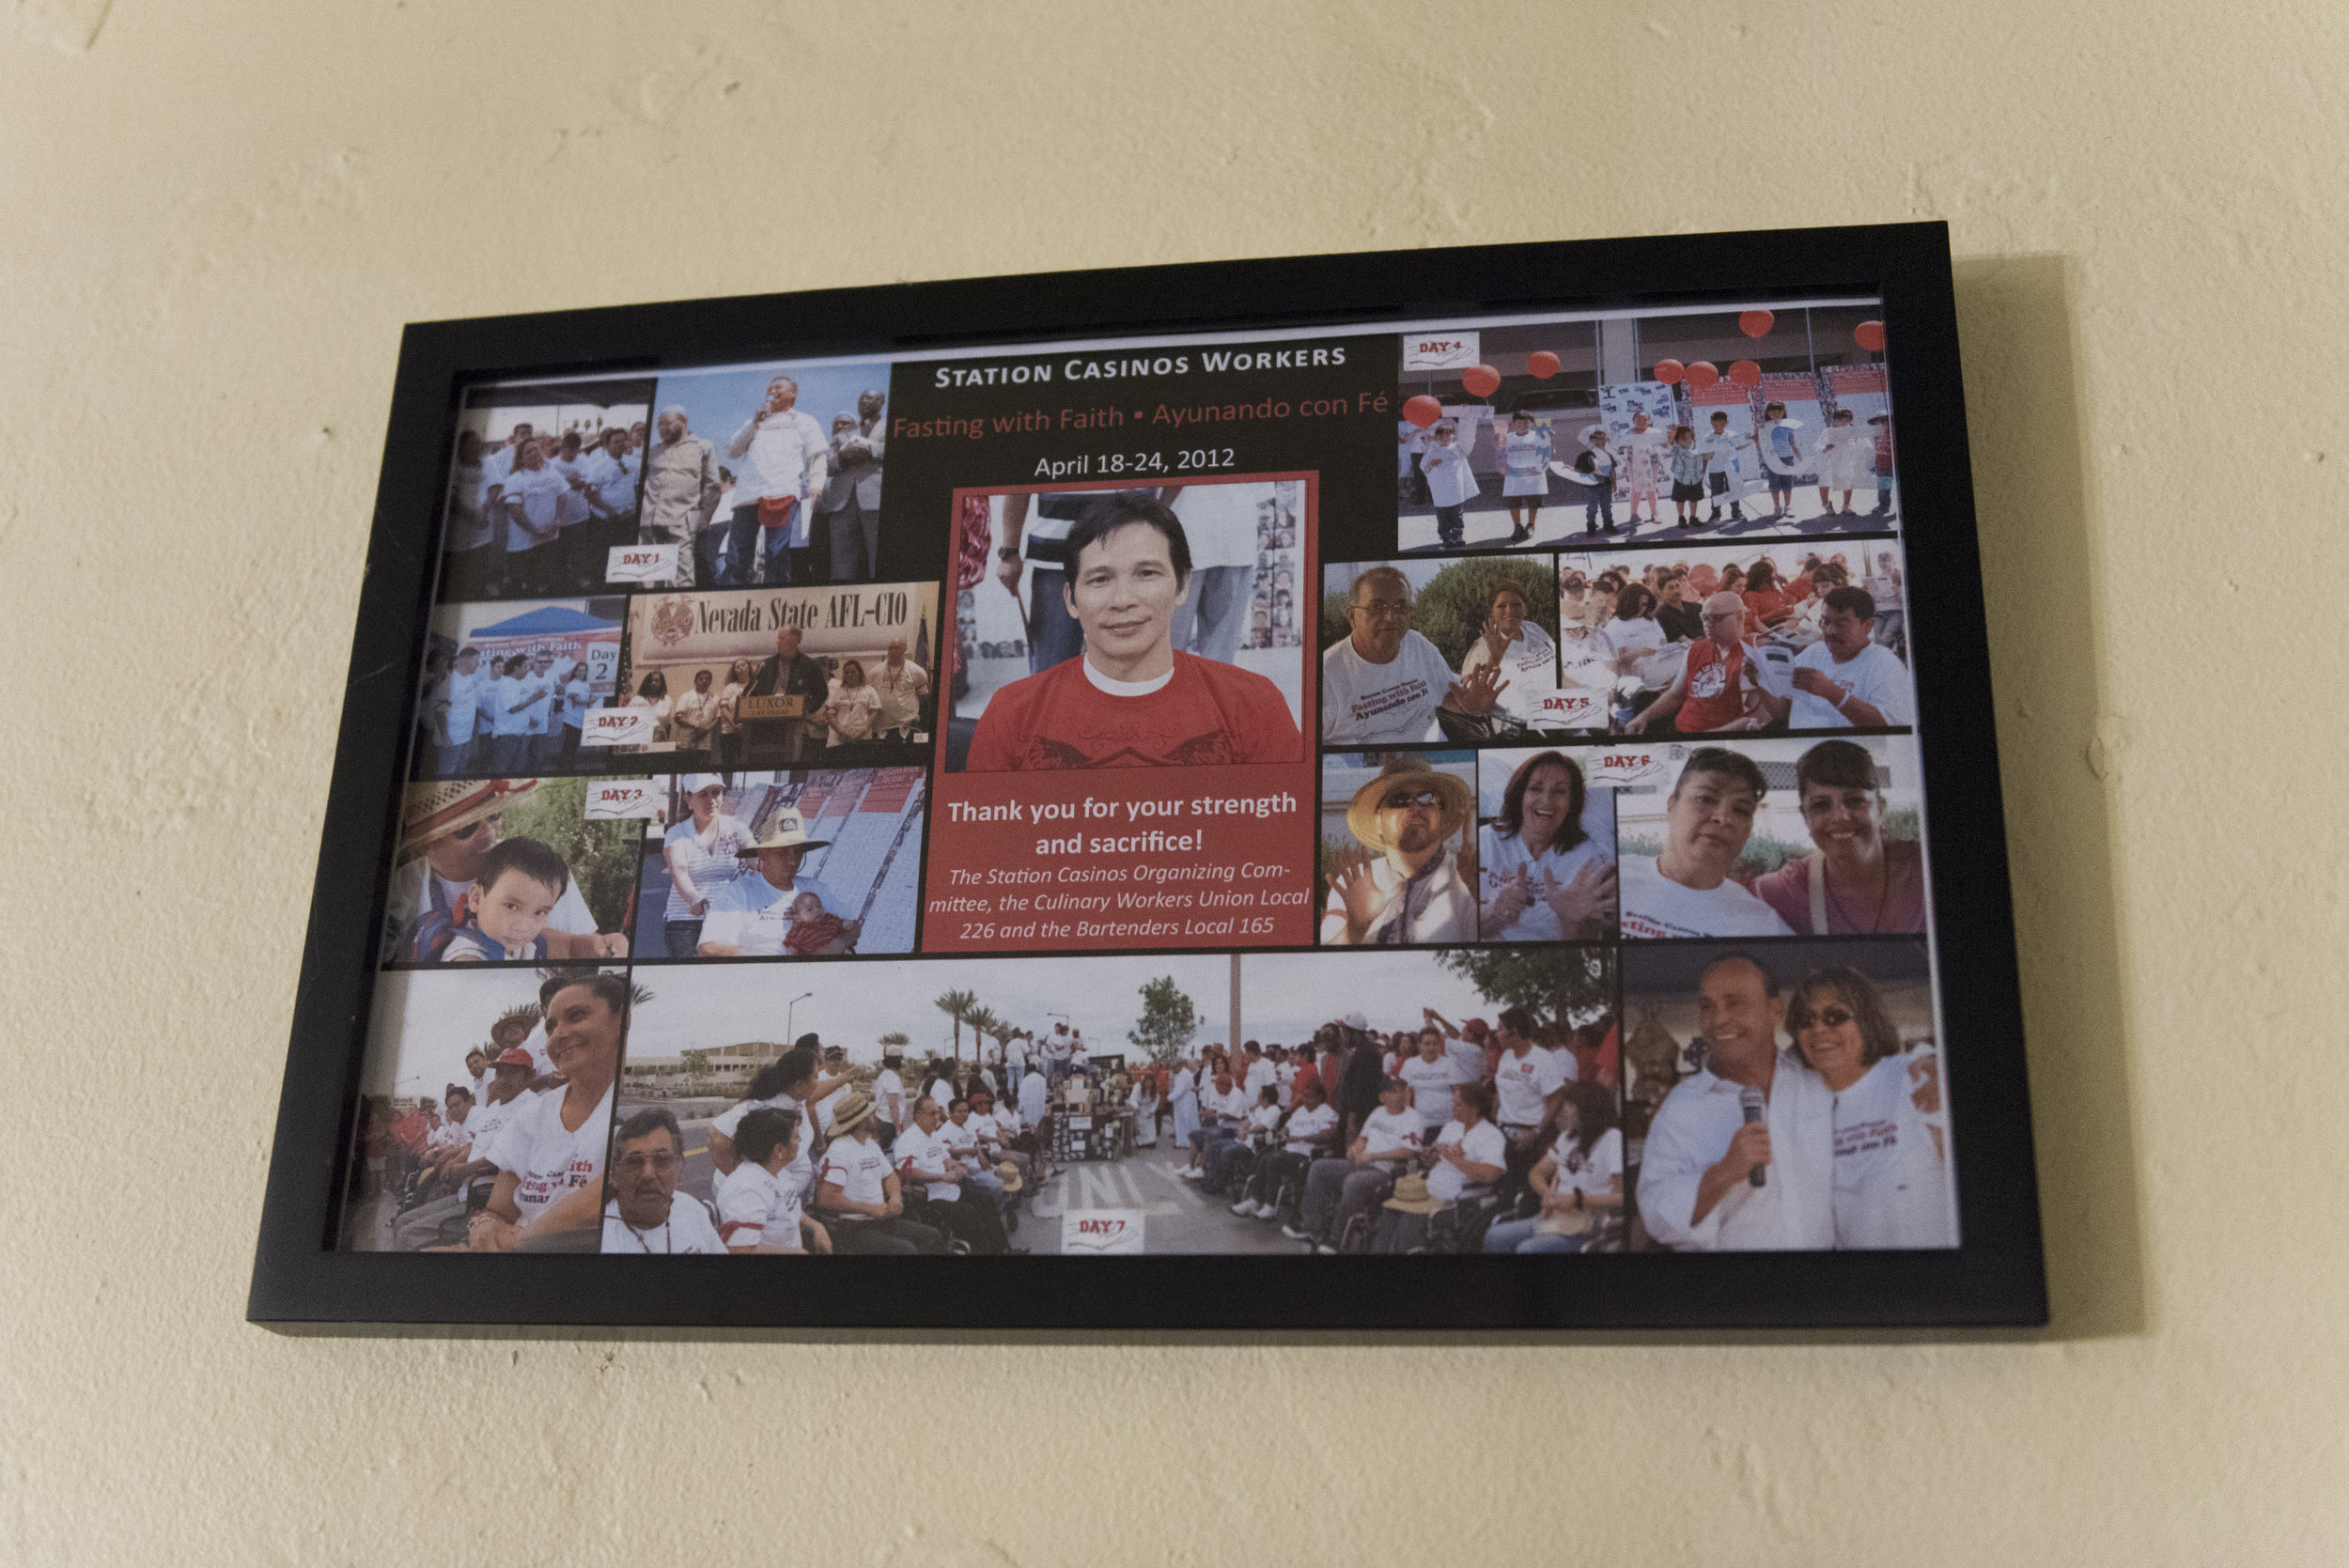 A collage commemorating a hunger strike by Station Casinos employees for the right to unionize is seen at the home of Casiano Corpus Jr..